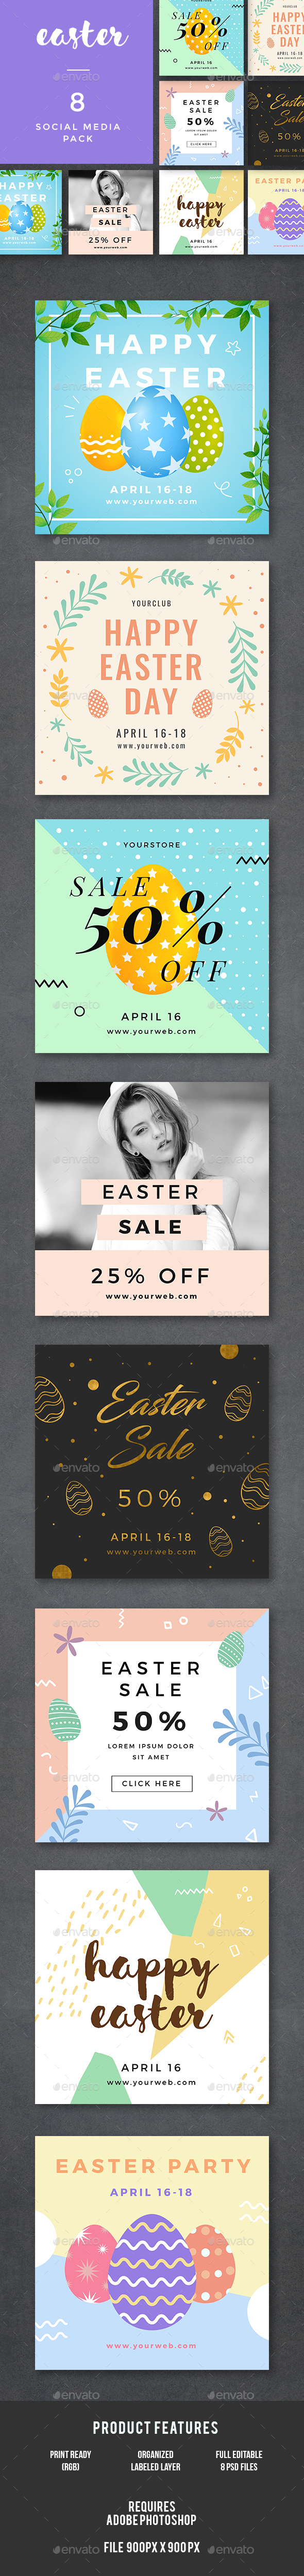 Easter Banners - Banners & Ads Web Elements